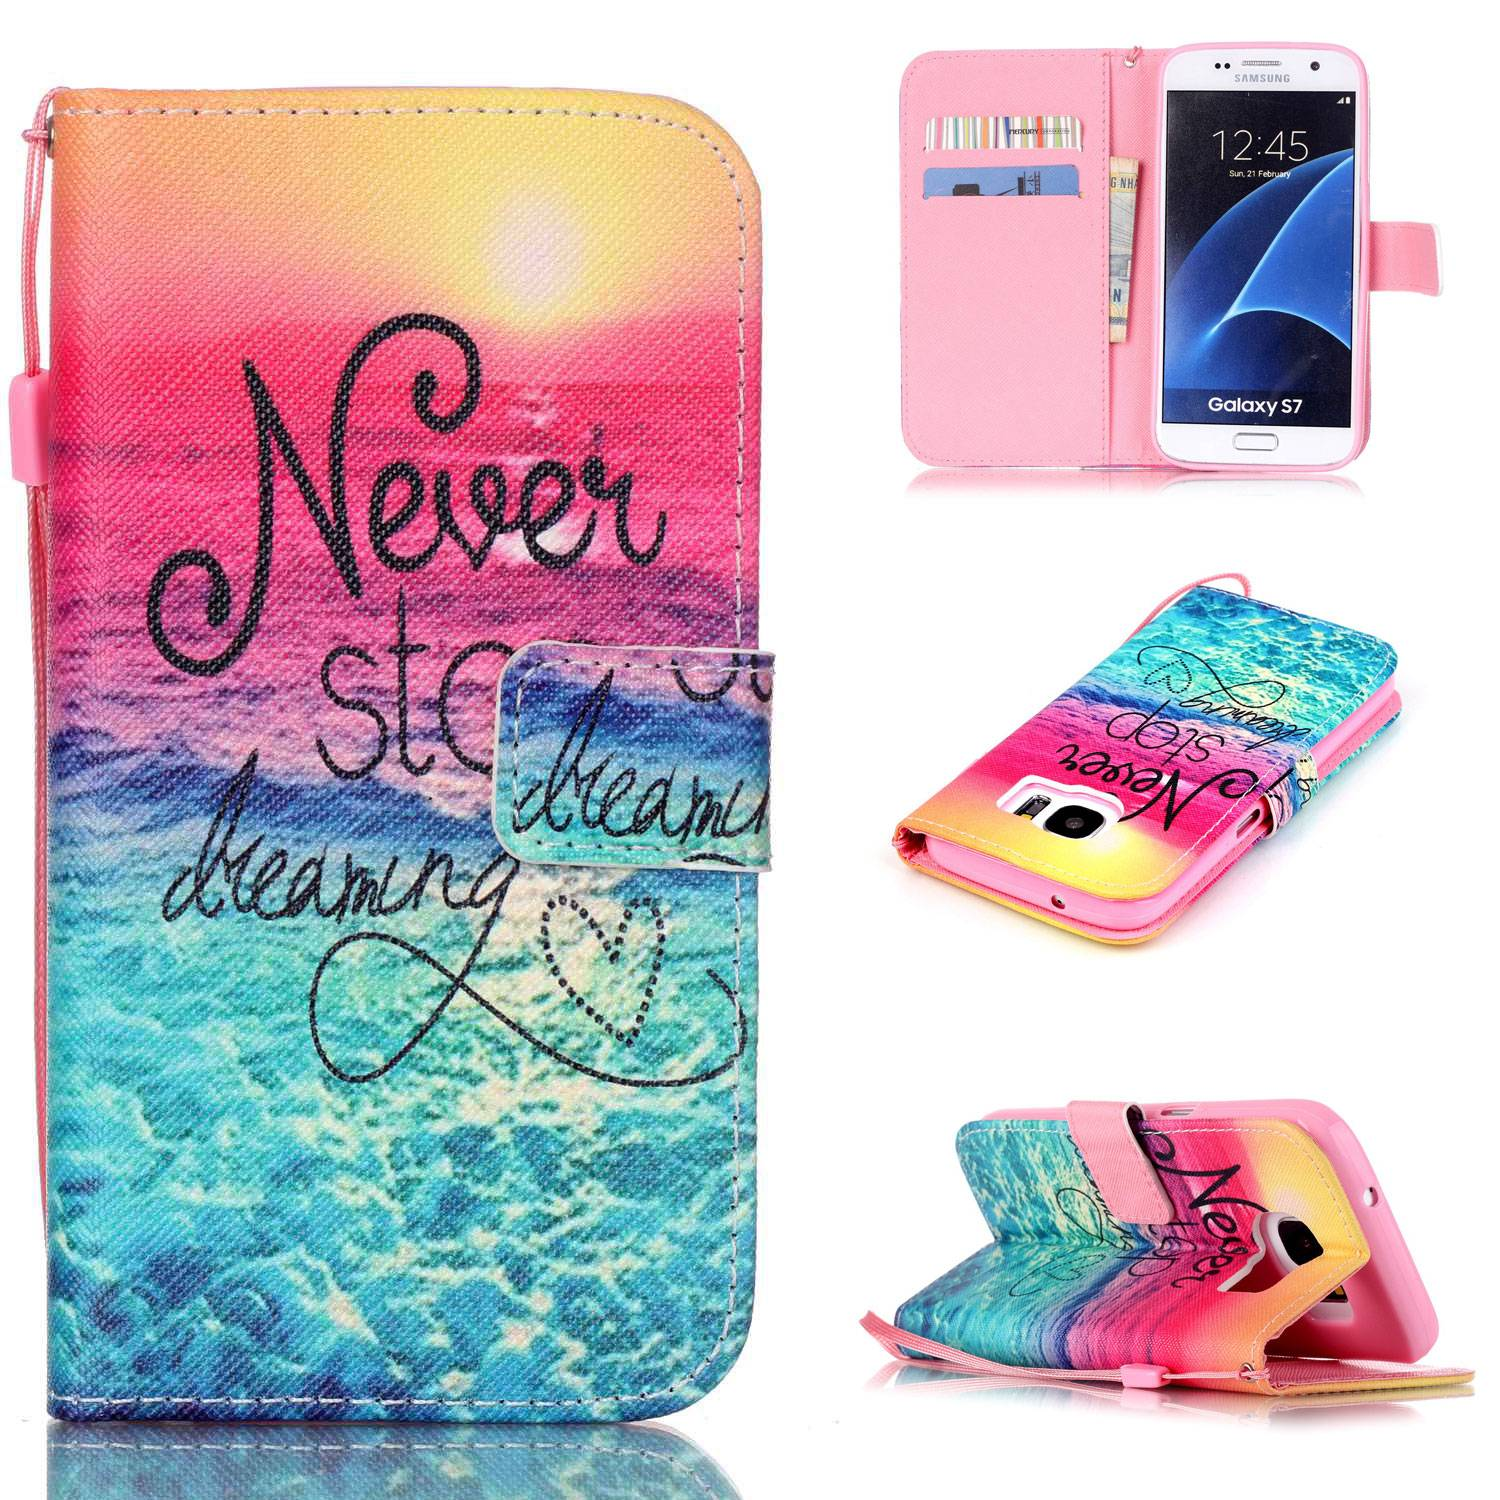 Fashion Print Leather phone case for Samsung Galaxy S7 and other phones wallet stand phone bag shell